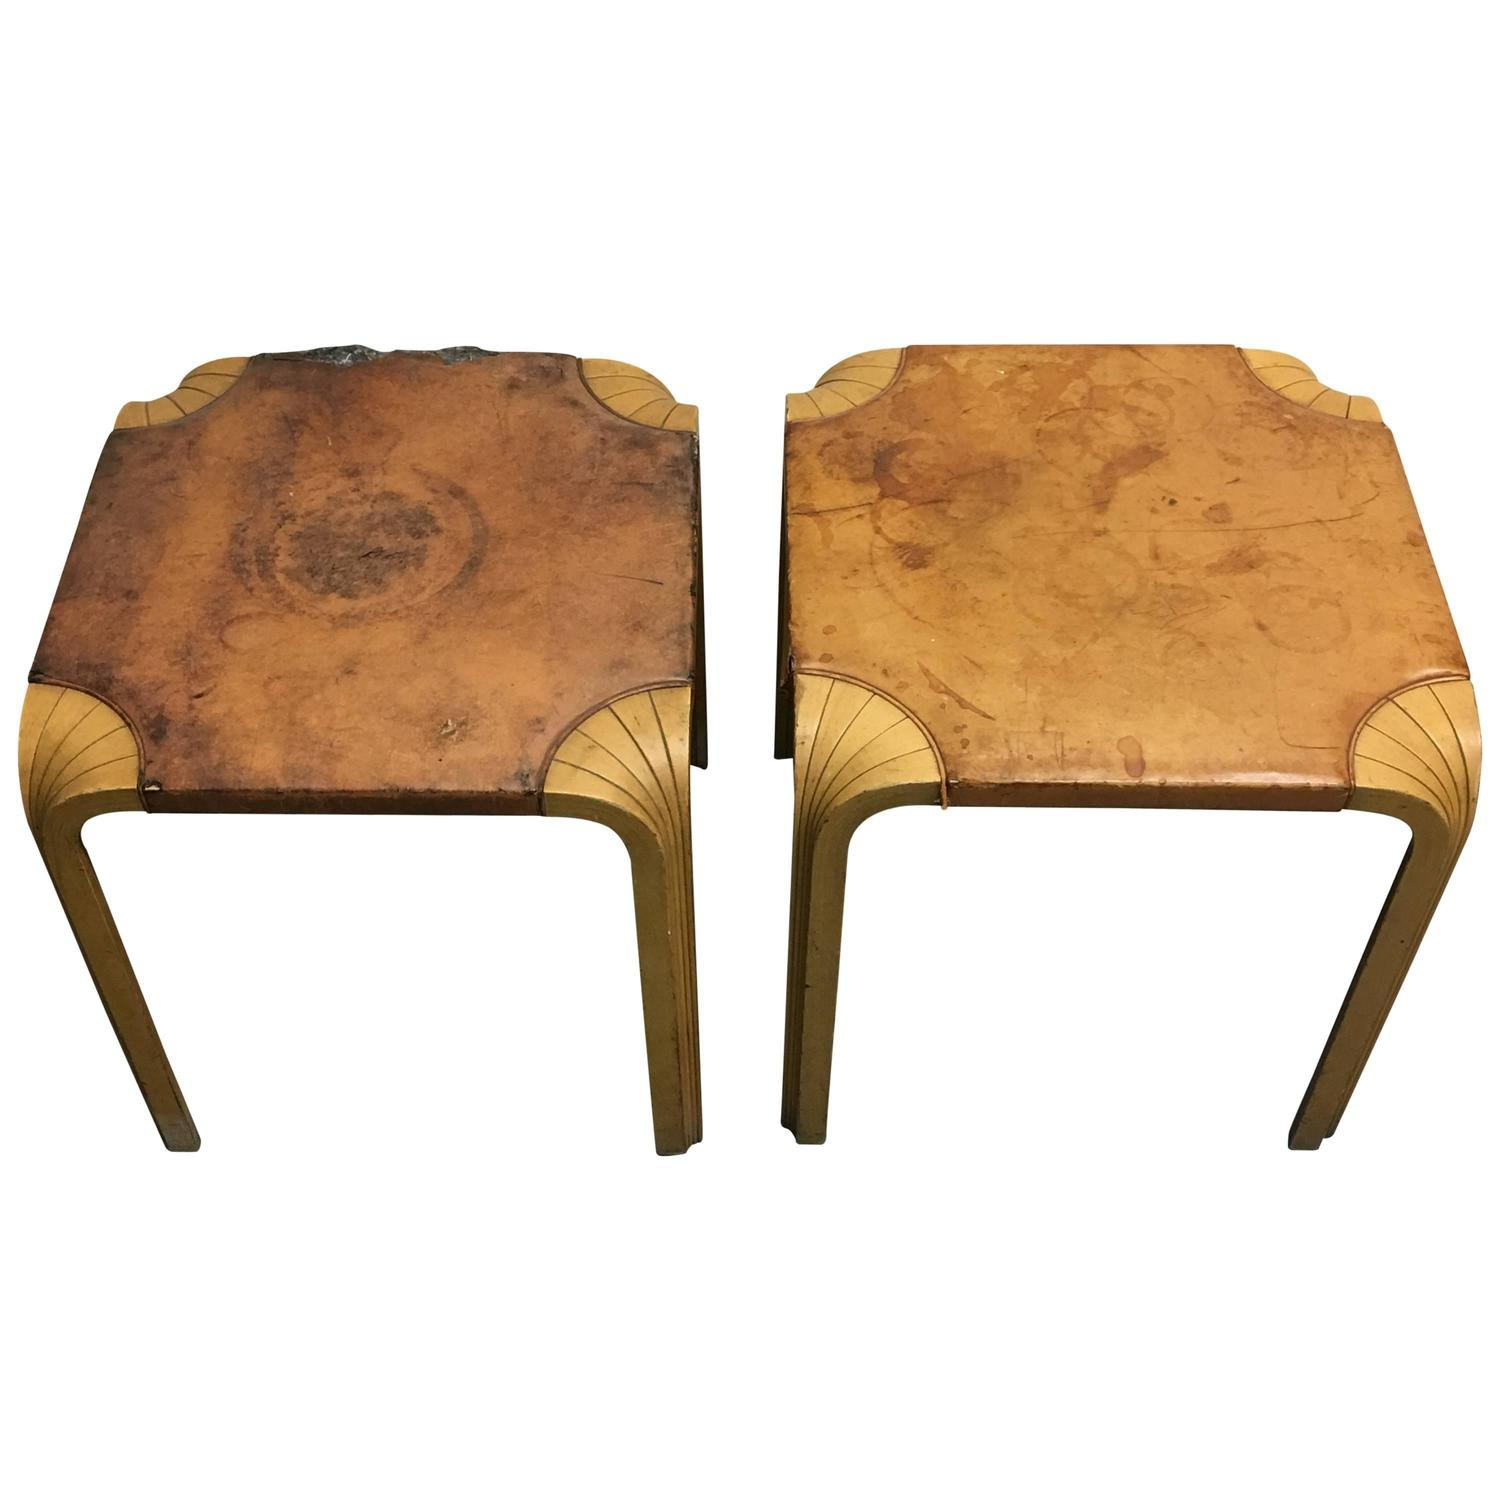 Two Alvar Aalto Fan Leg Stools or Side Tables For Sale at 1stdibs